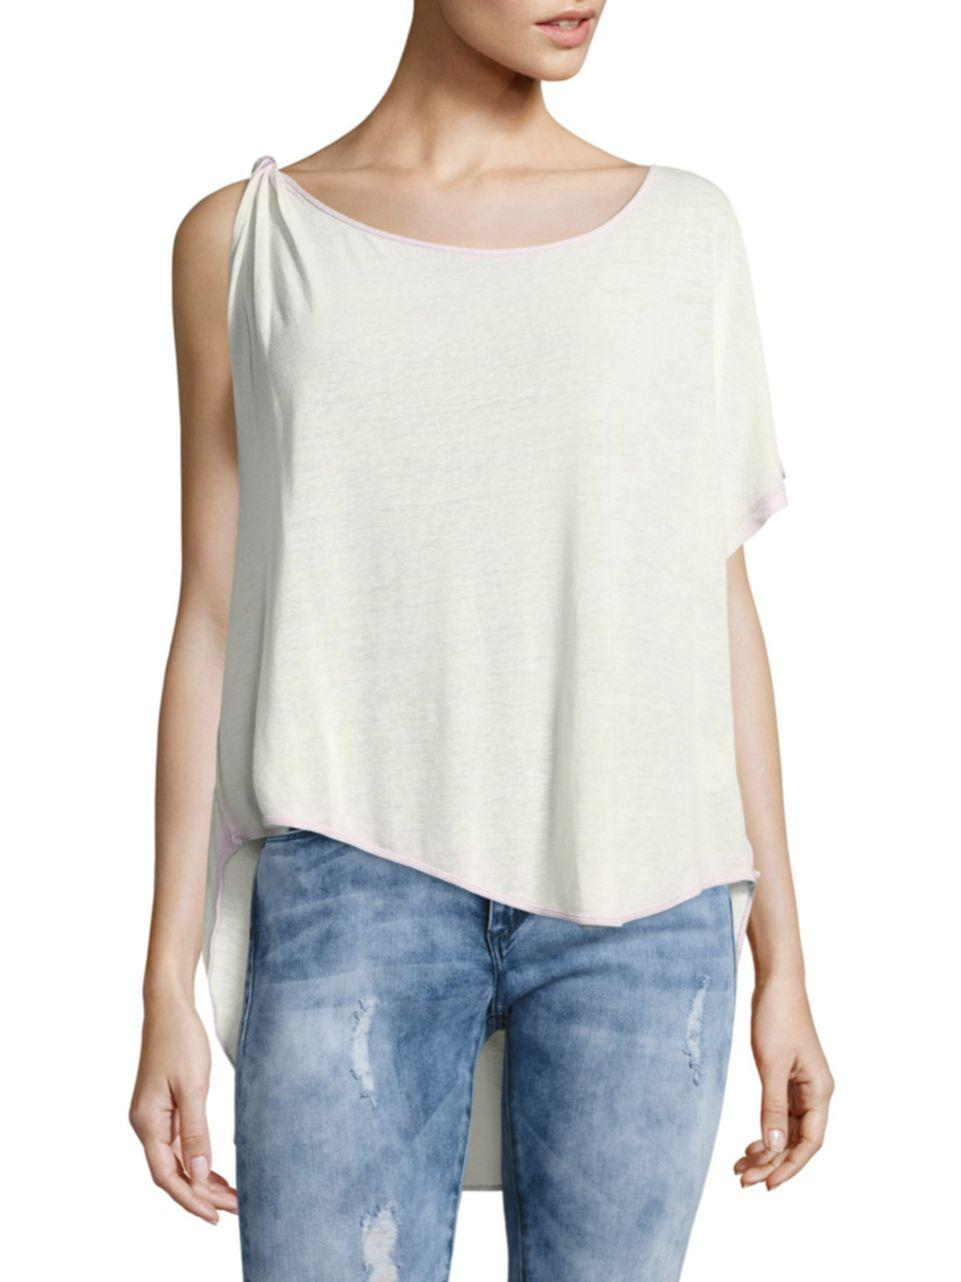 ded29ca0a90af5 Free People Pluto One-shoulder Top in White - Lyst